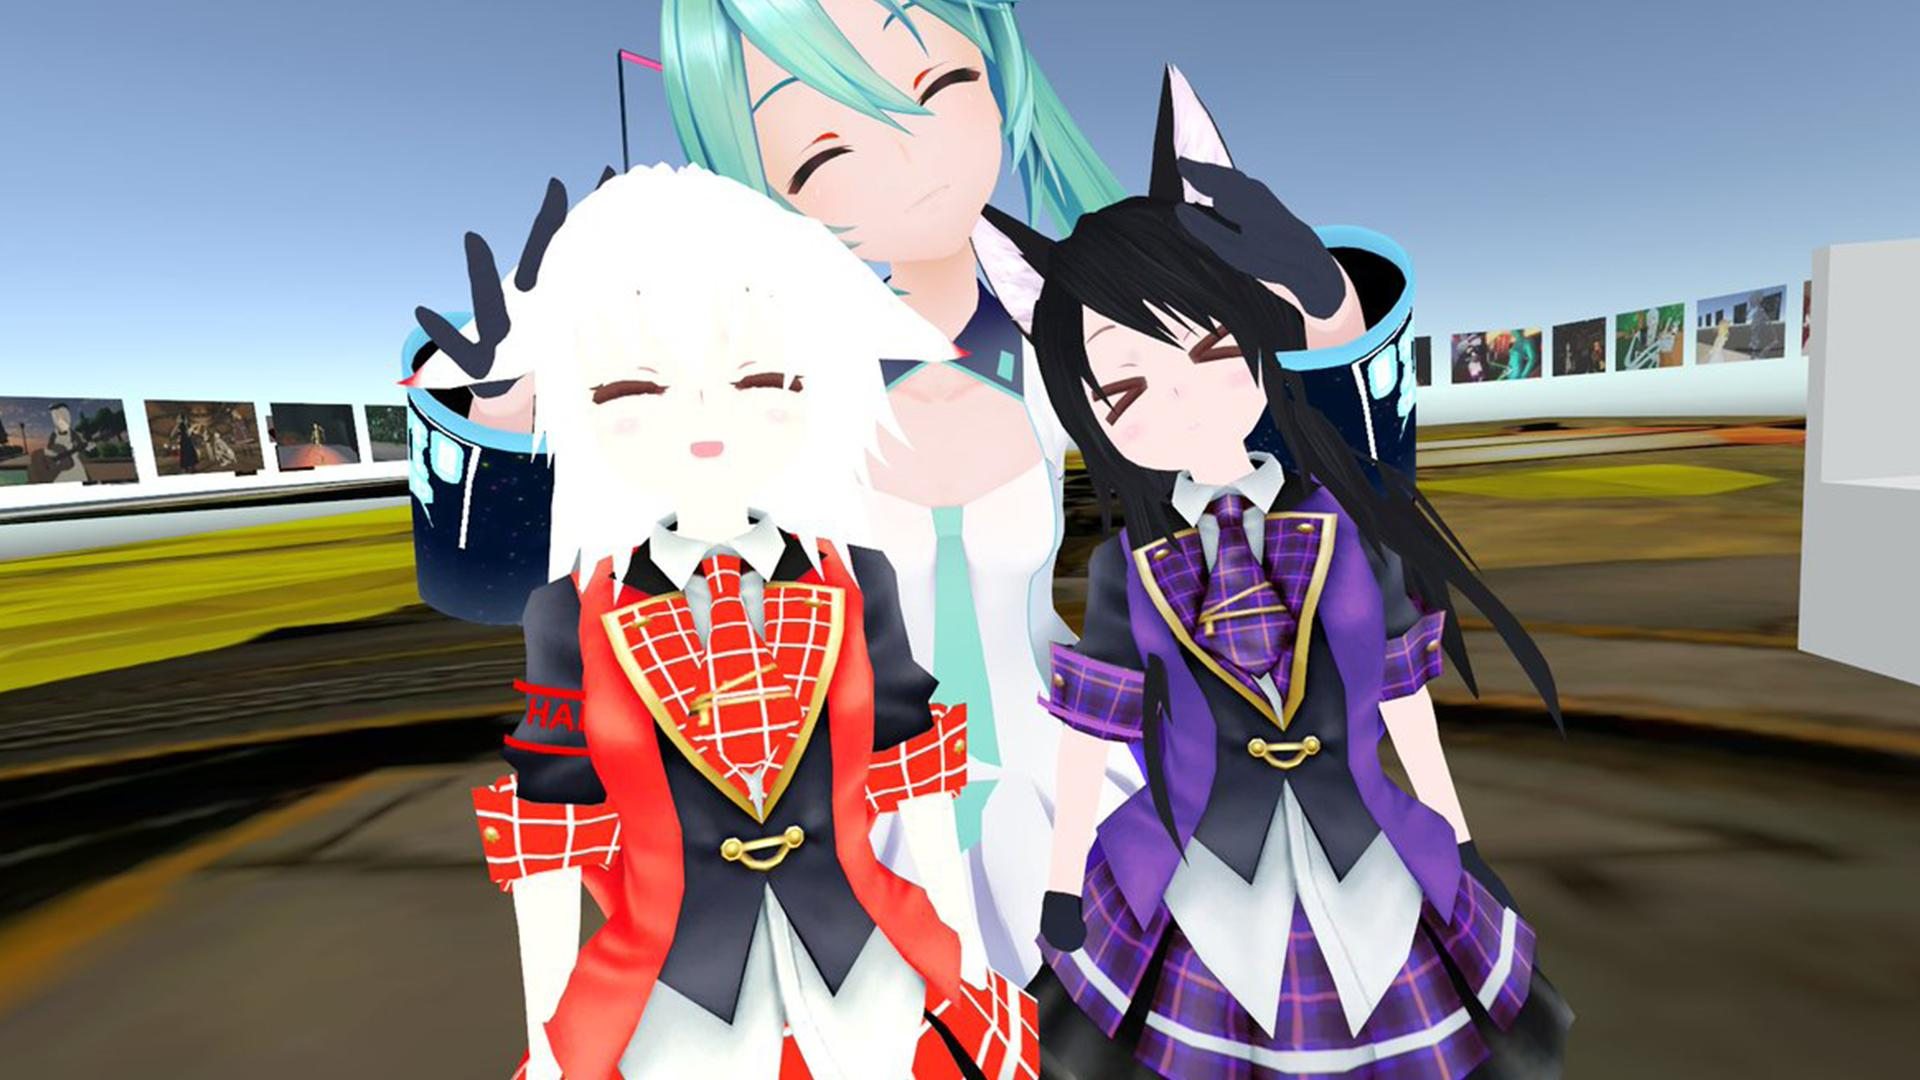 VRChat Anime Avatars for Android - APK Download